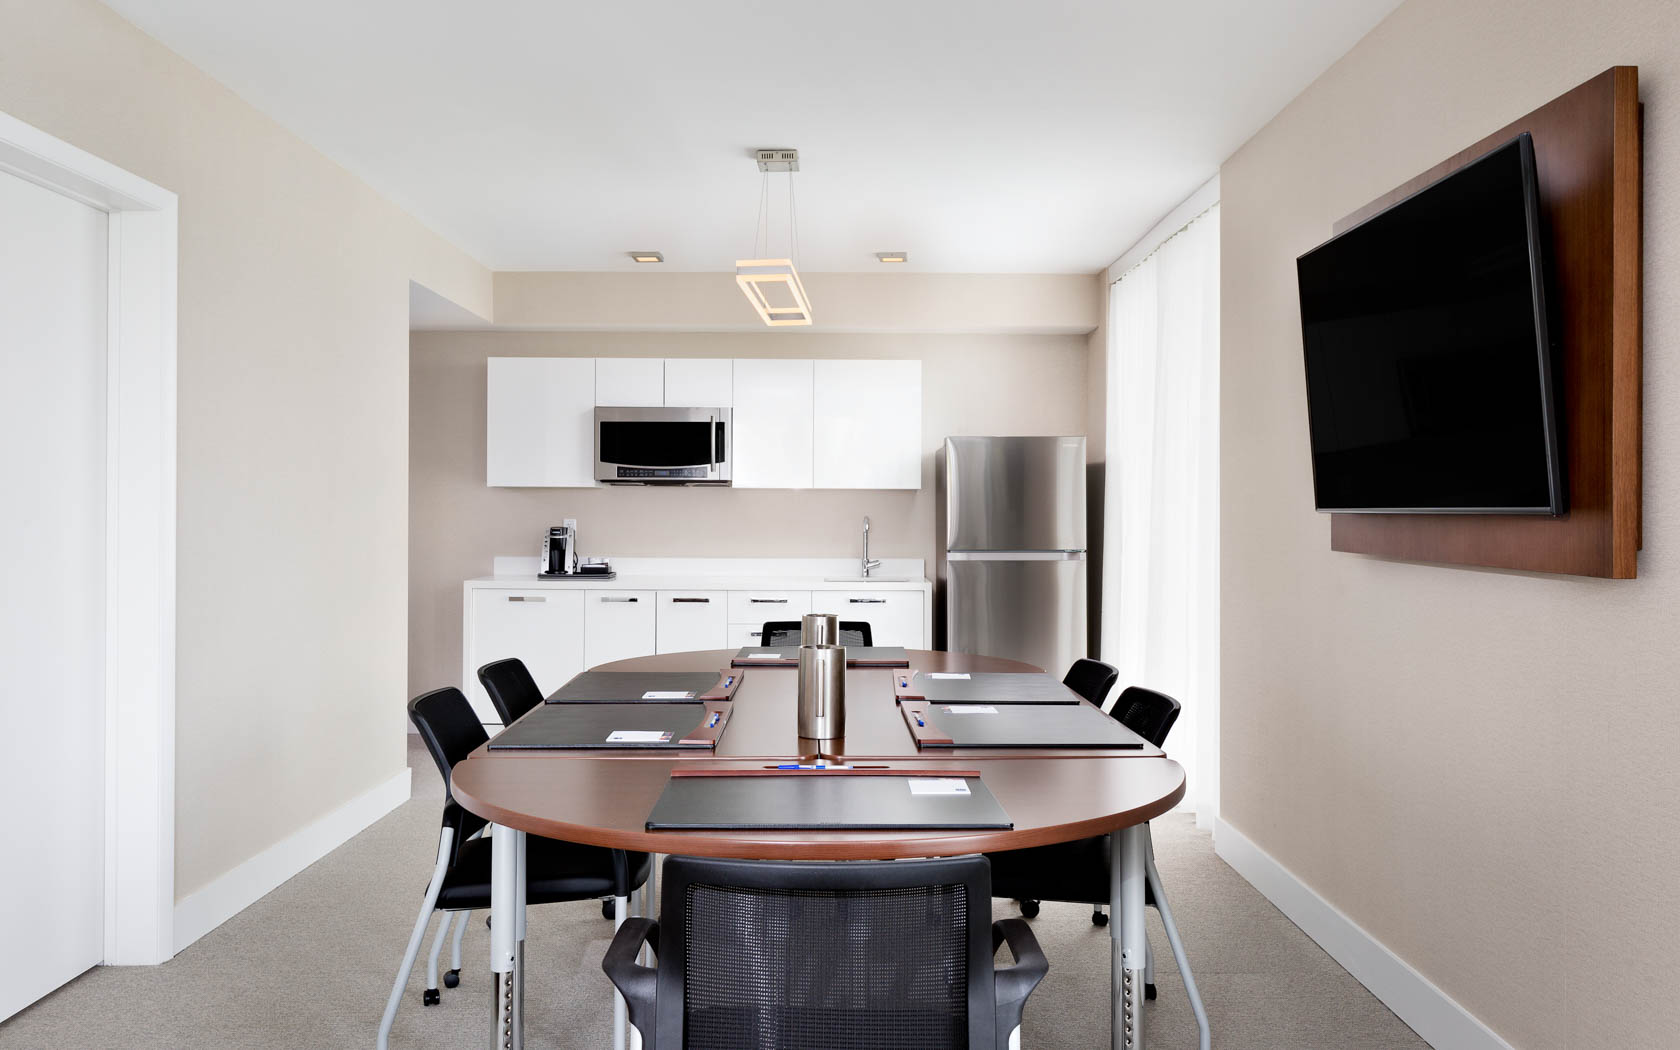 conference table with kitchenette